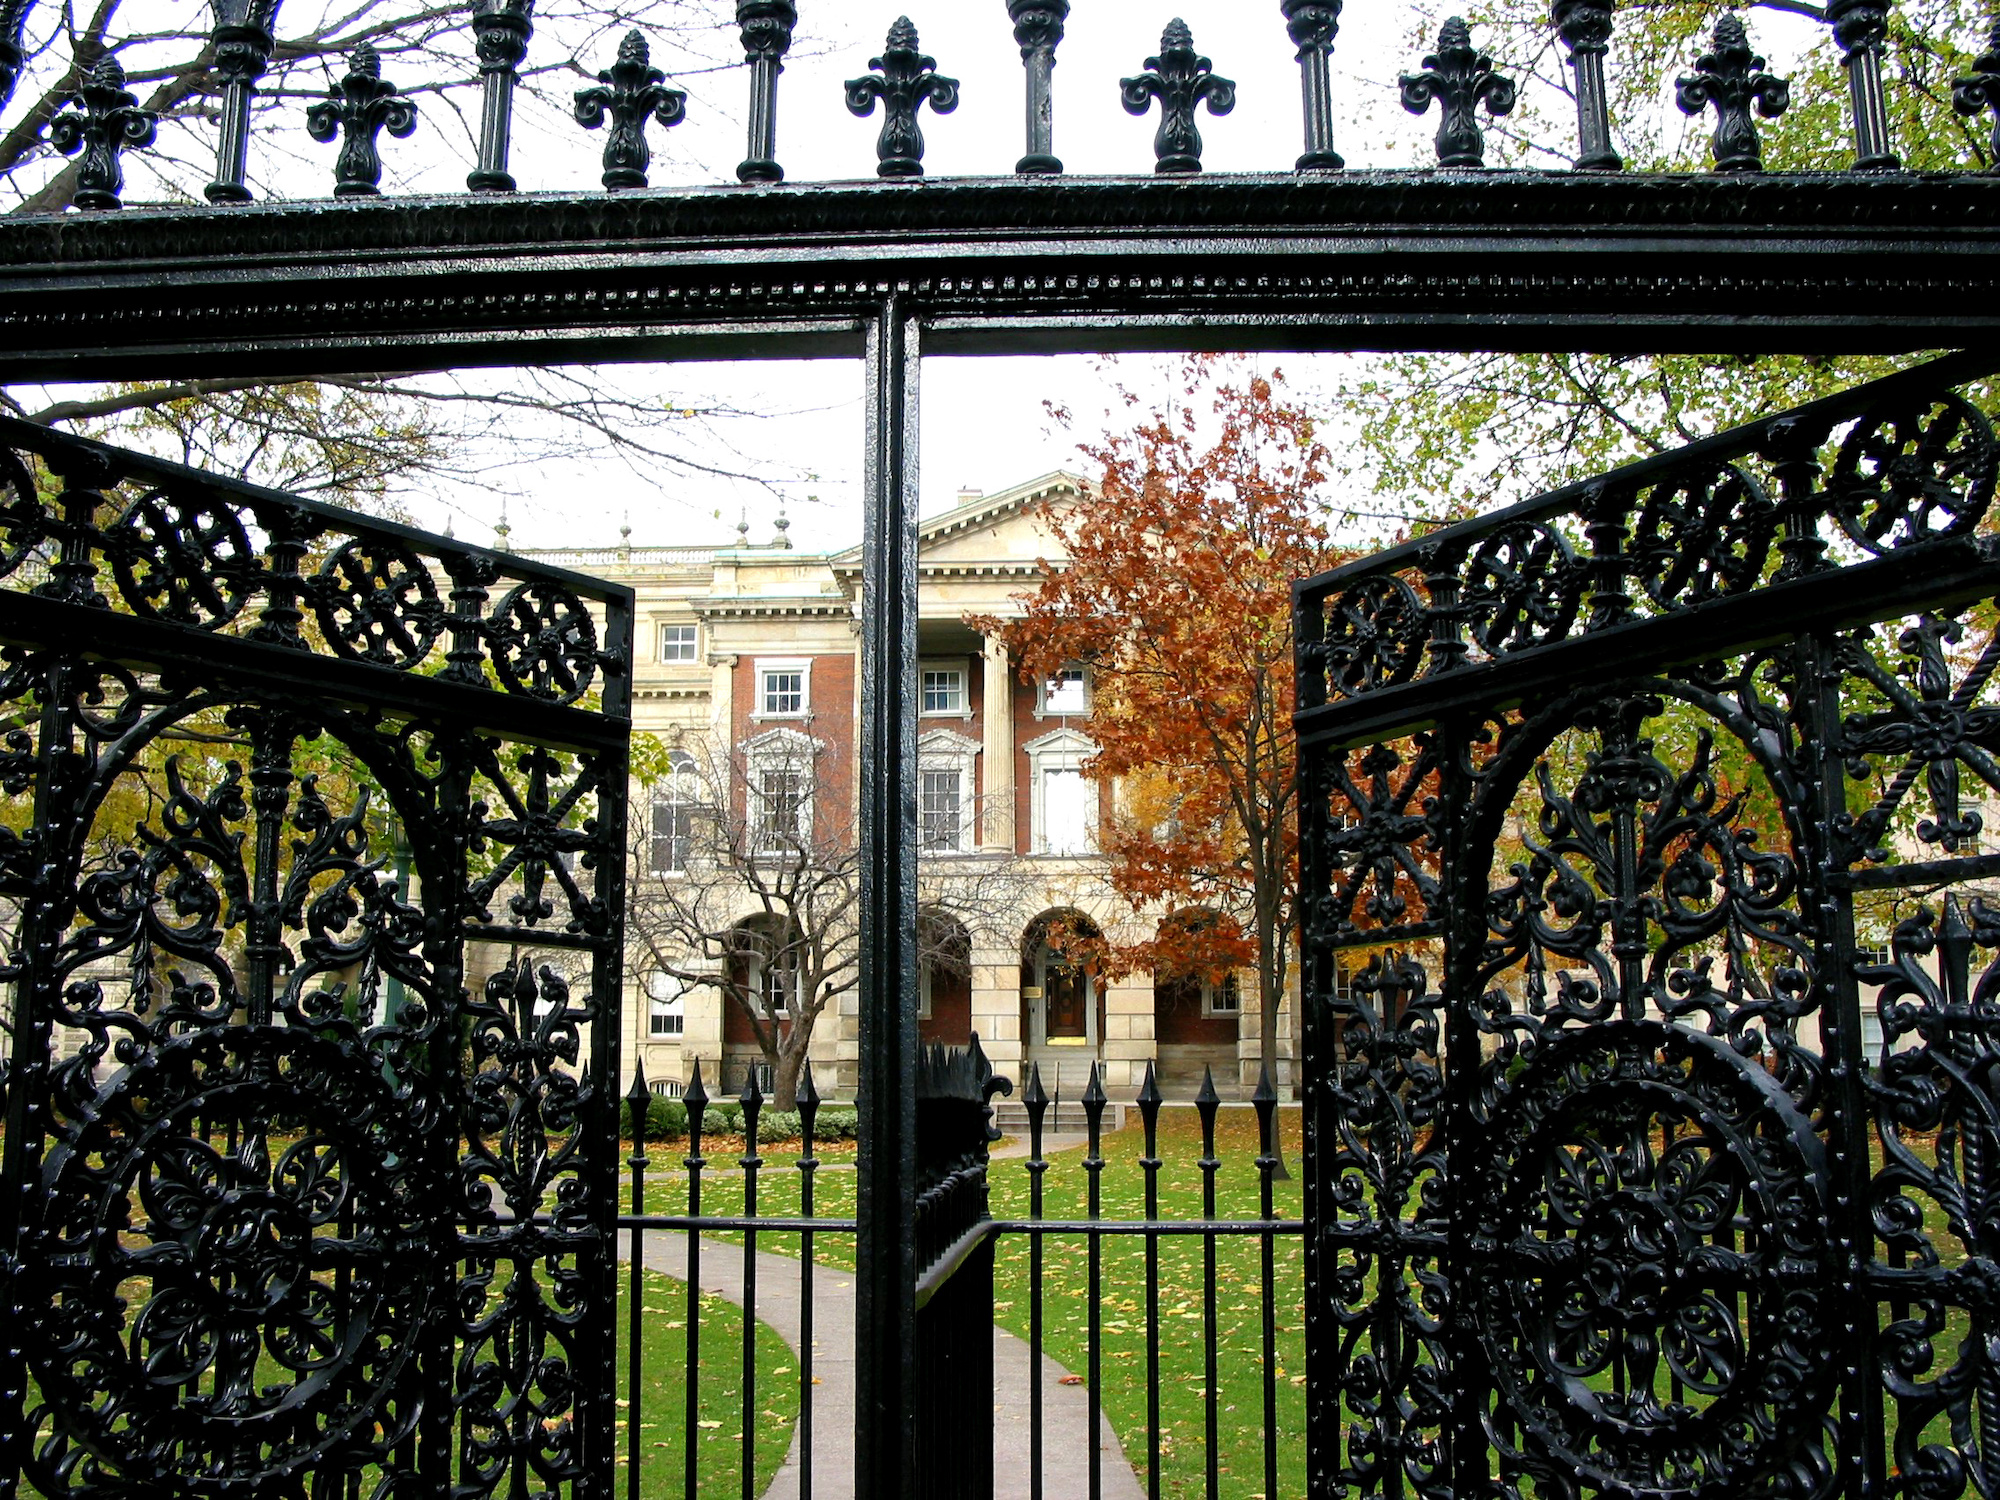 A beautiful wrought iron gate opening to reveal a grand estate